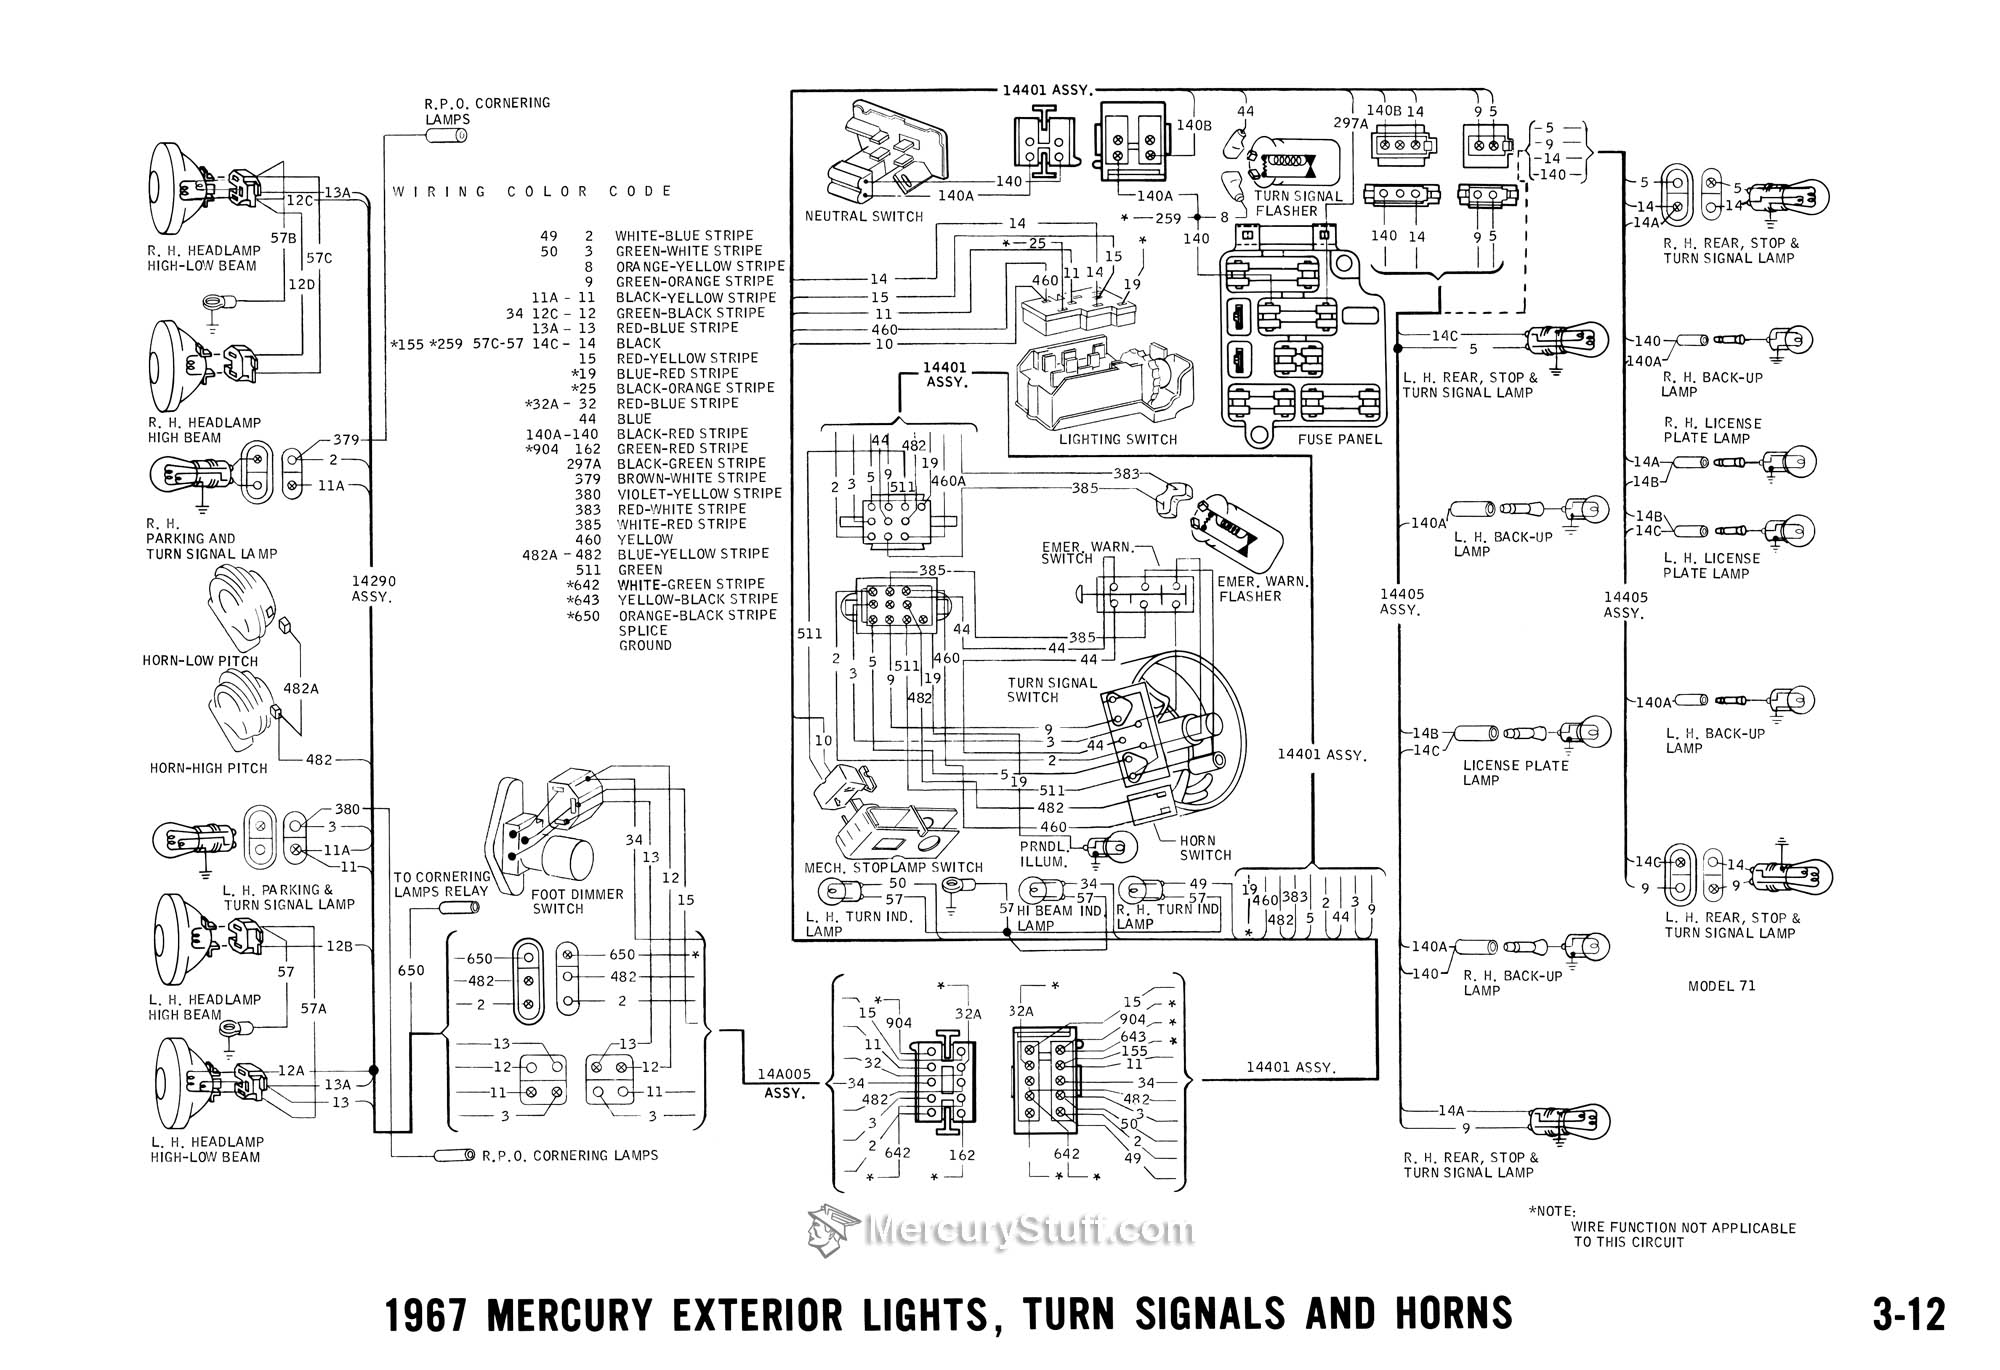 1994 cougar wiring diagram wiring diagram all data 1998 Grand Marquis Wiring Diagram mercury cougar wiring harness diagram data wiring diagram 1994 camaro wiring diagram 1994 cougar wiring diagram